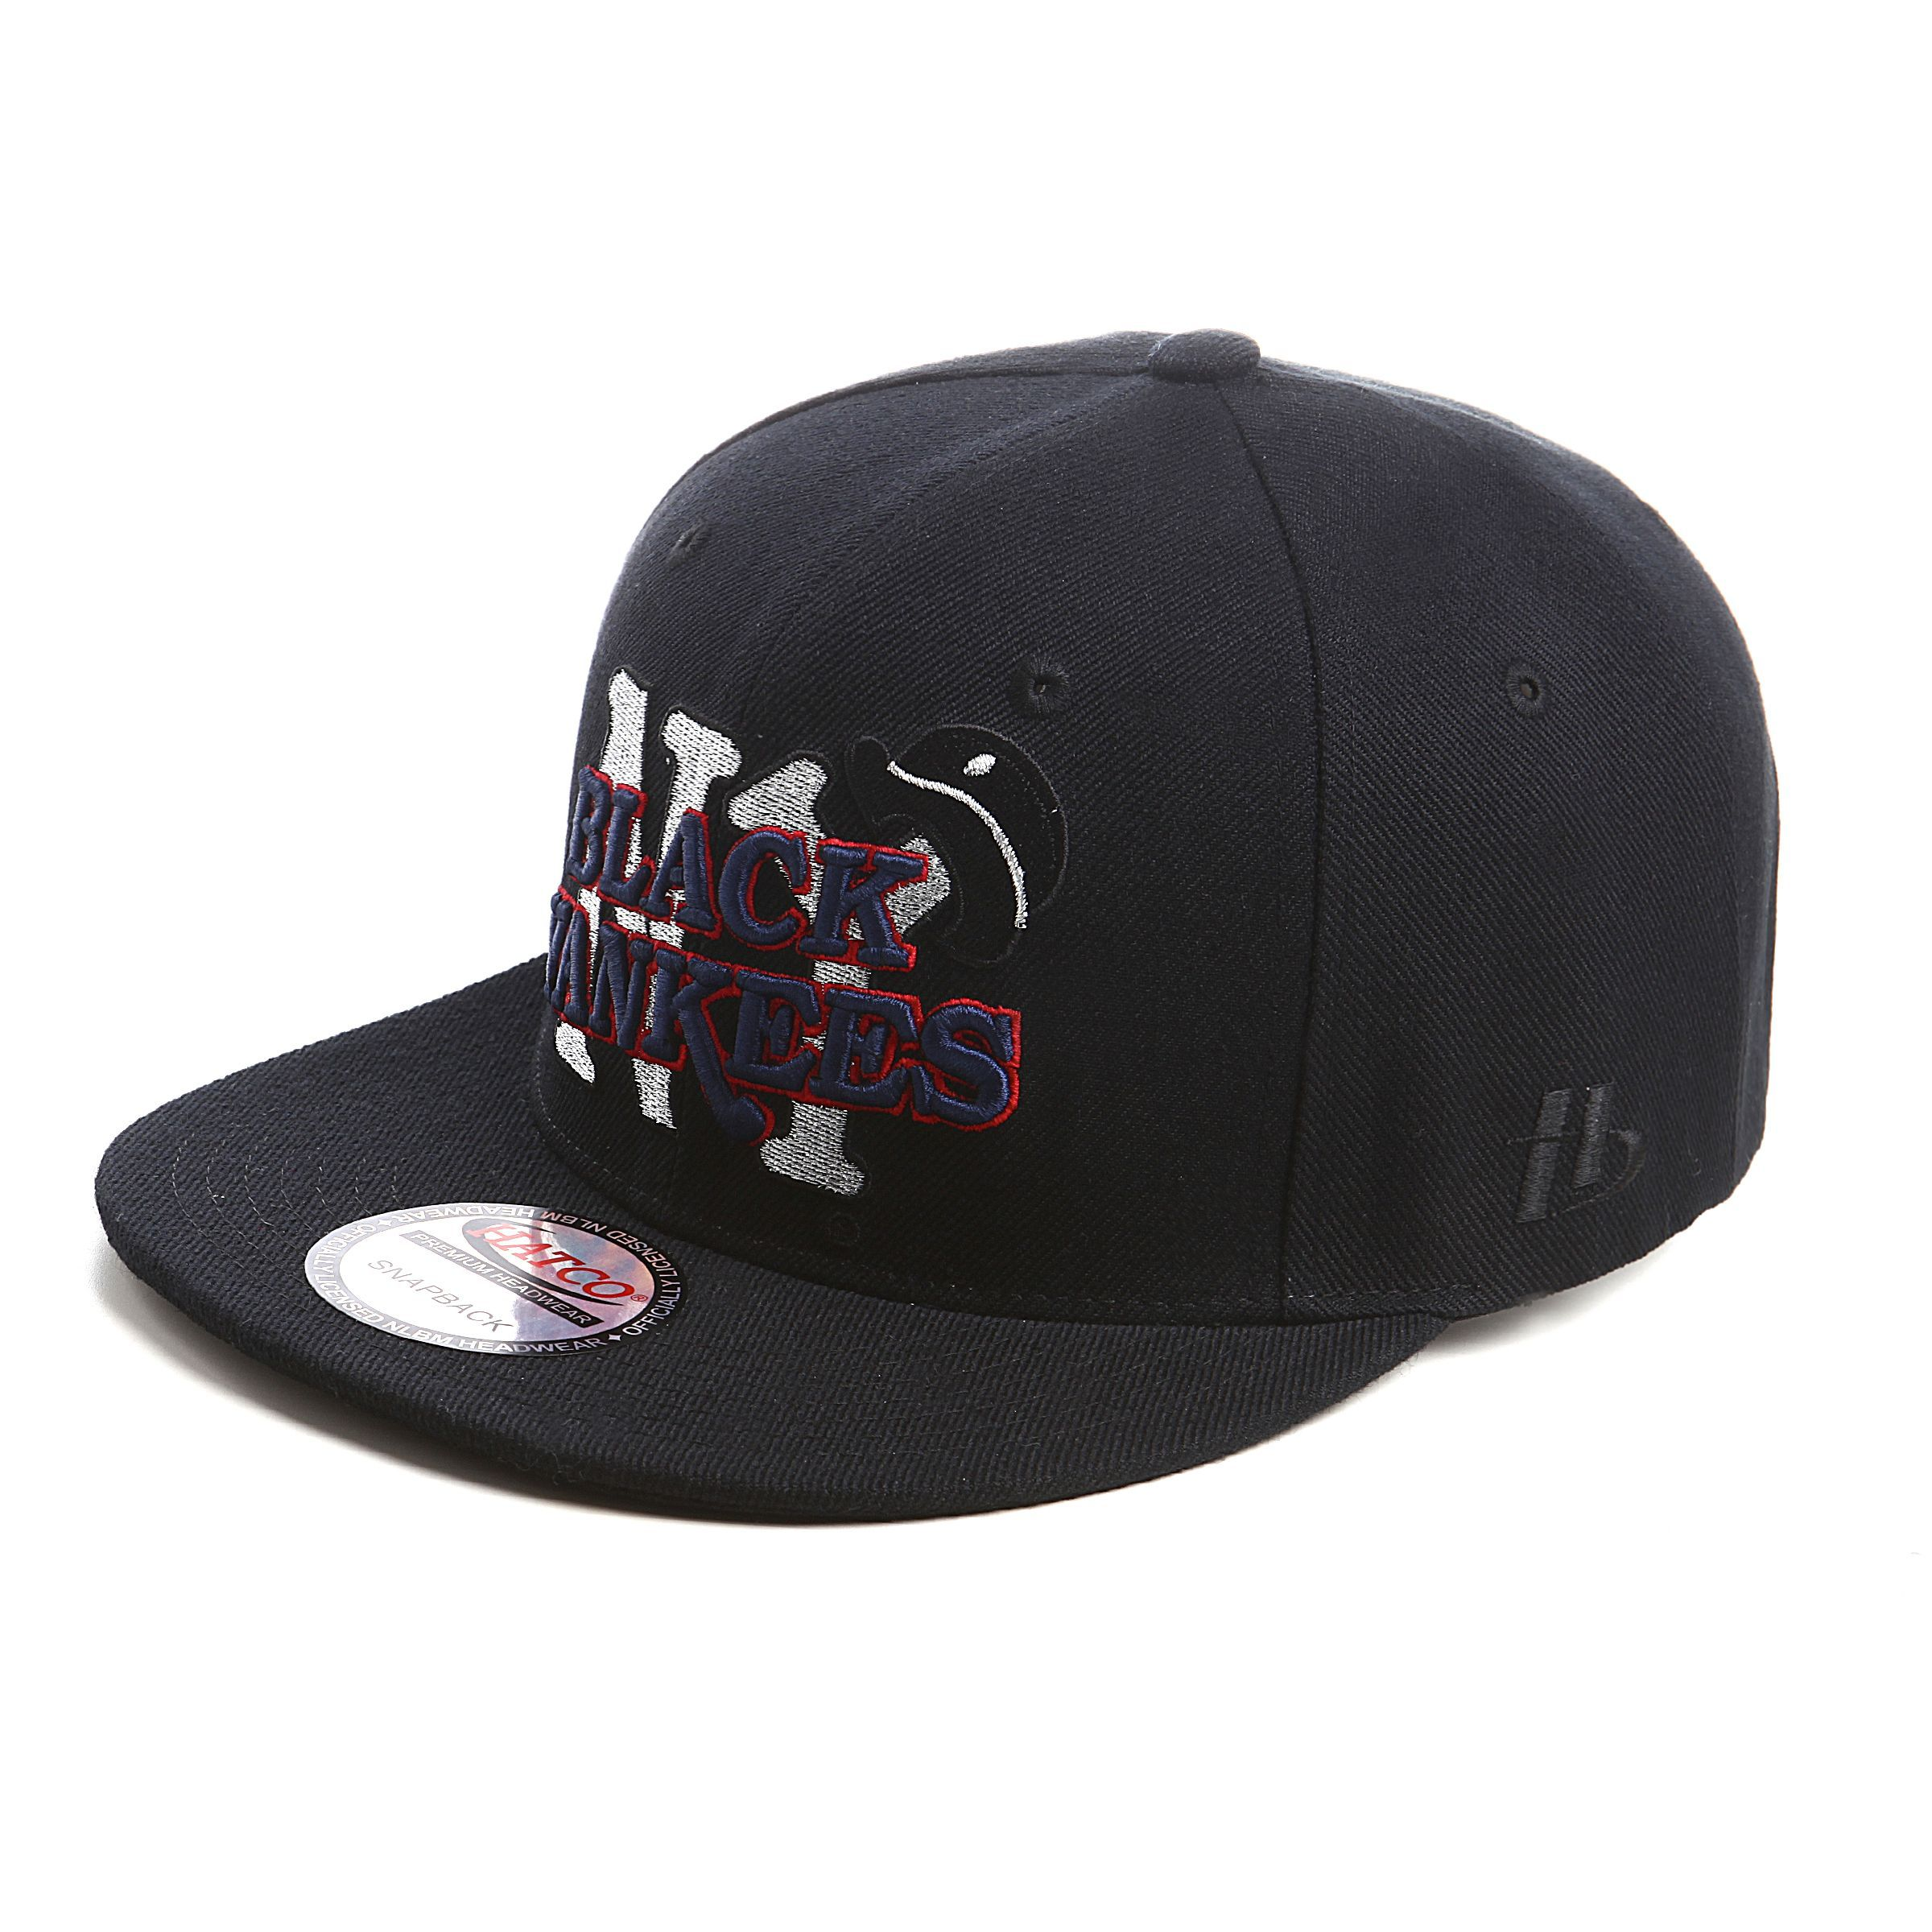 Nlbm New York Black Yankees Snapback Cap With Images Hats For Men Snapback